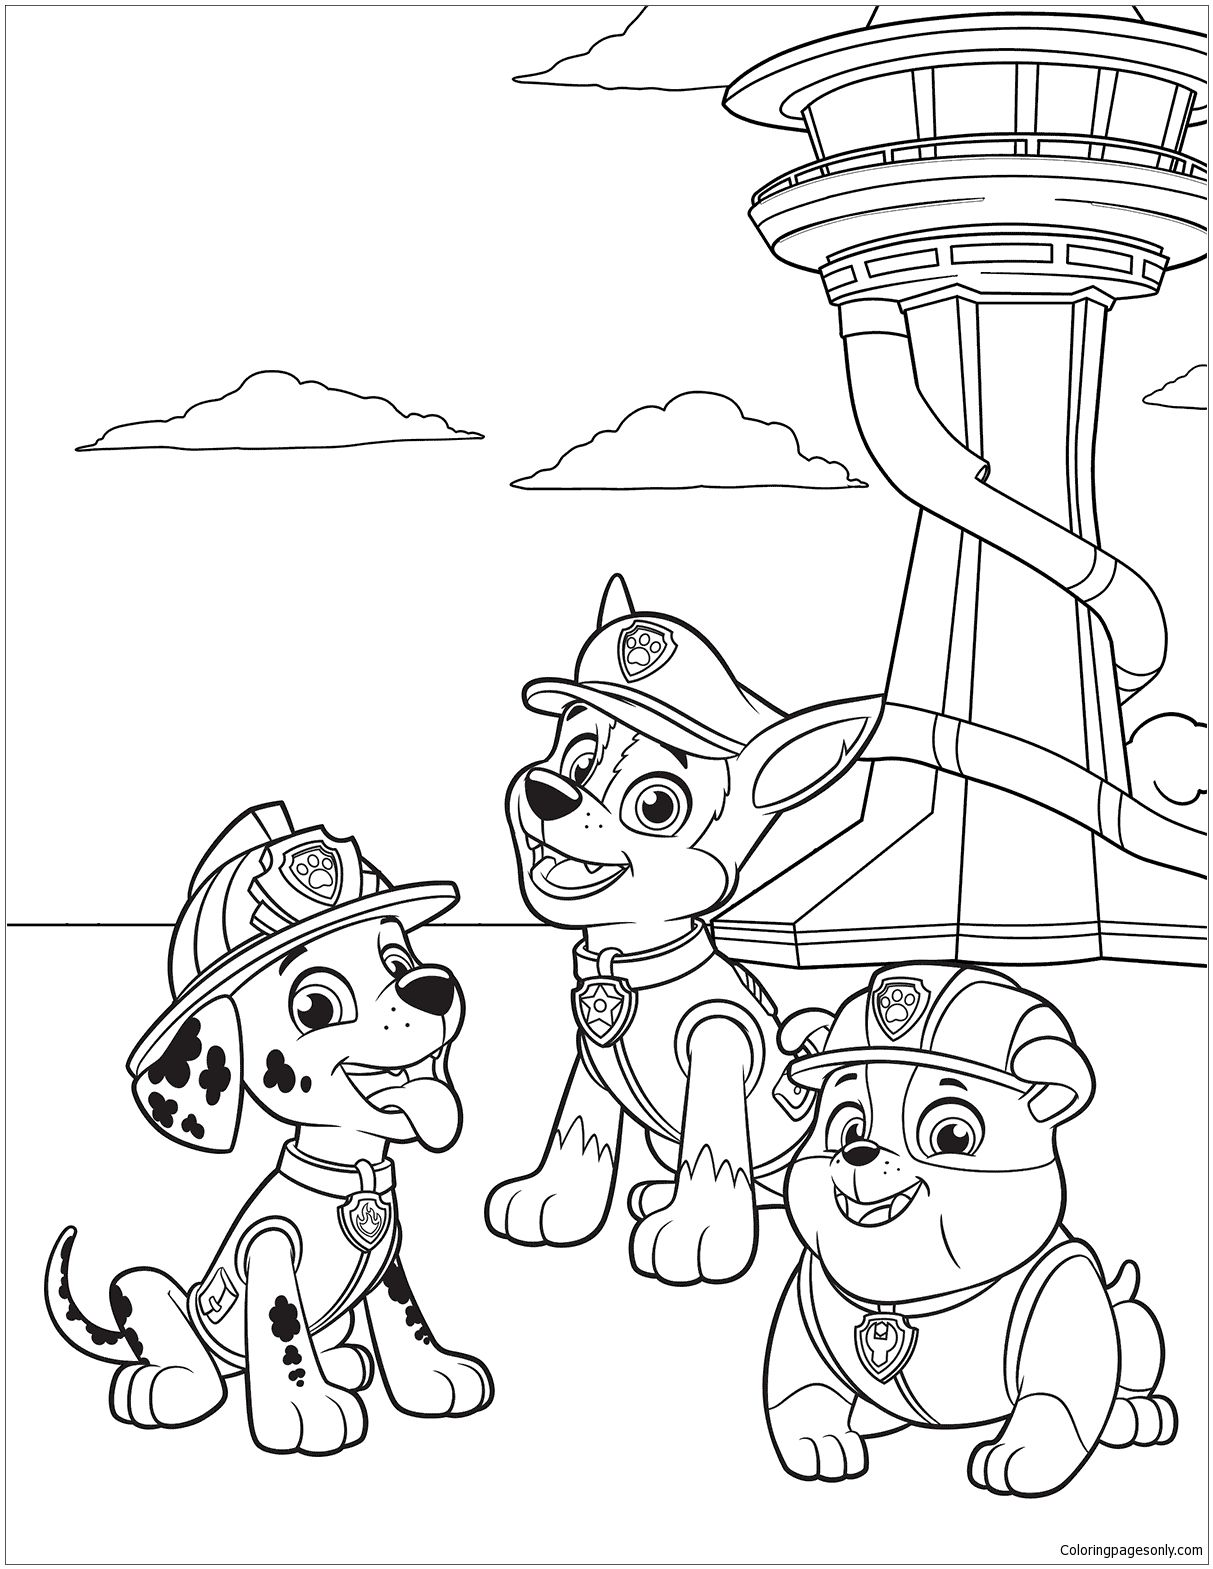 Paw Patrol 38 Coloring Page | Coloring Pages | Pinterest ...